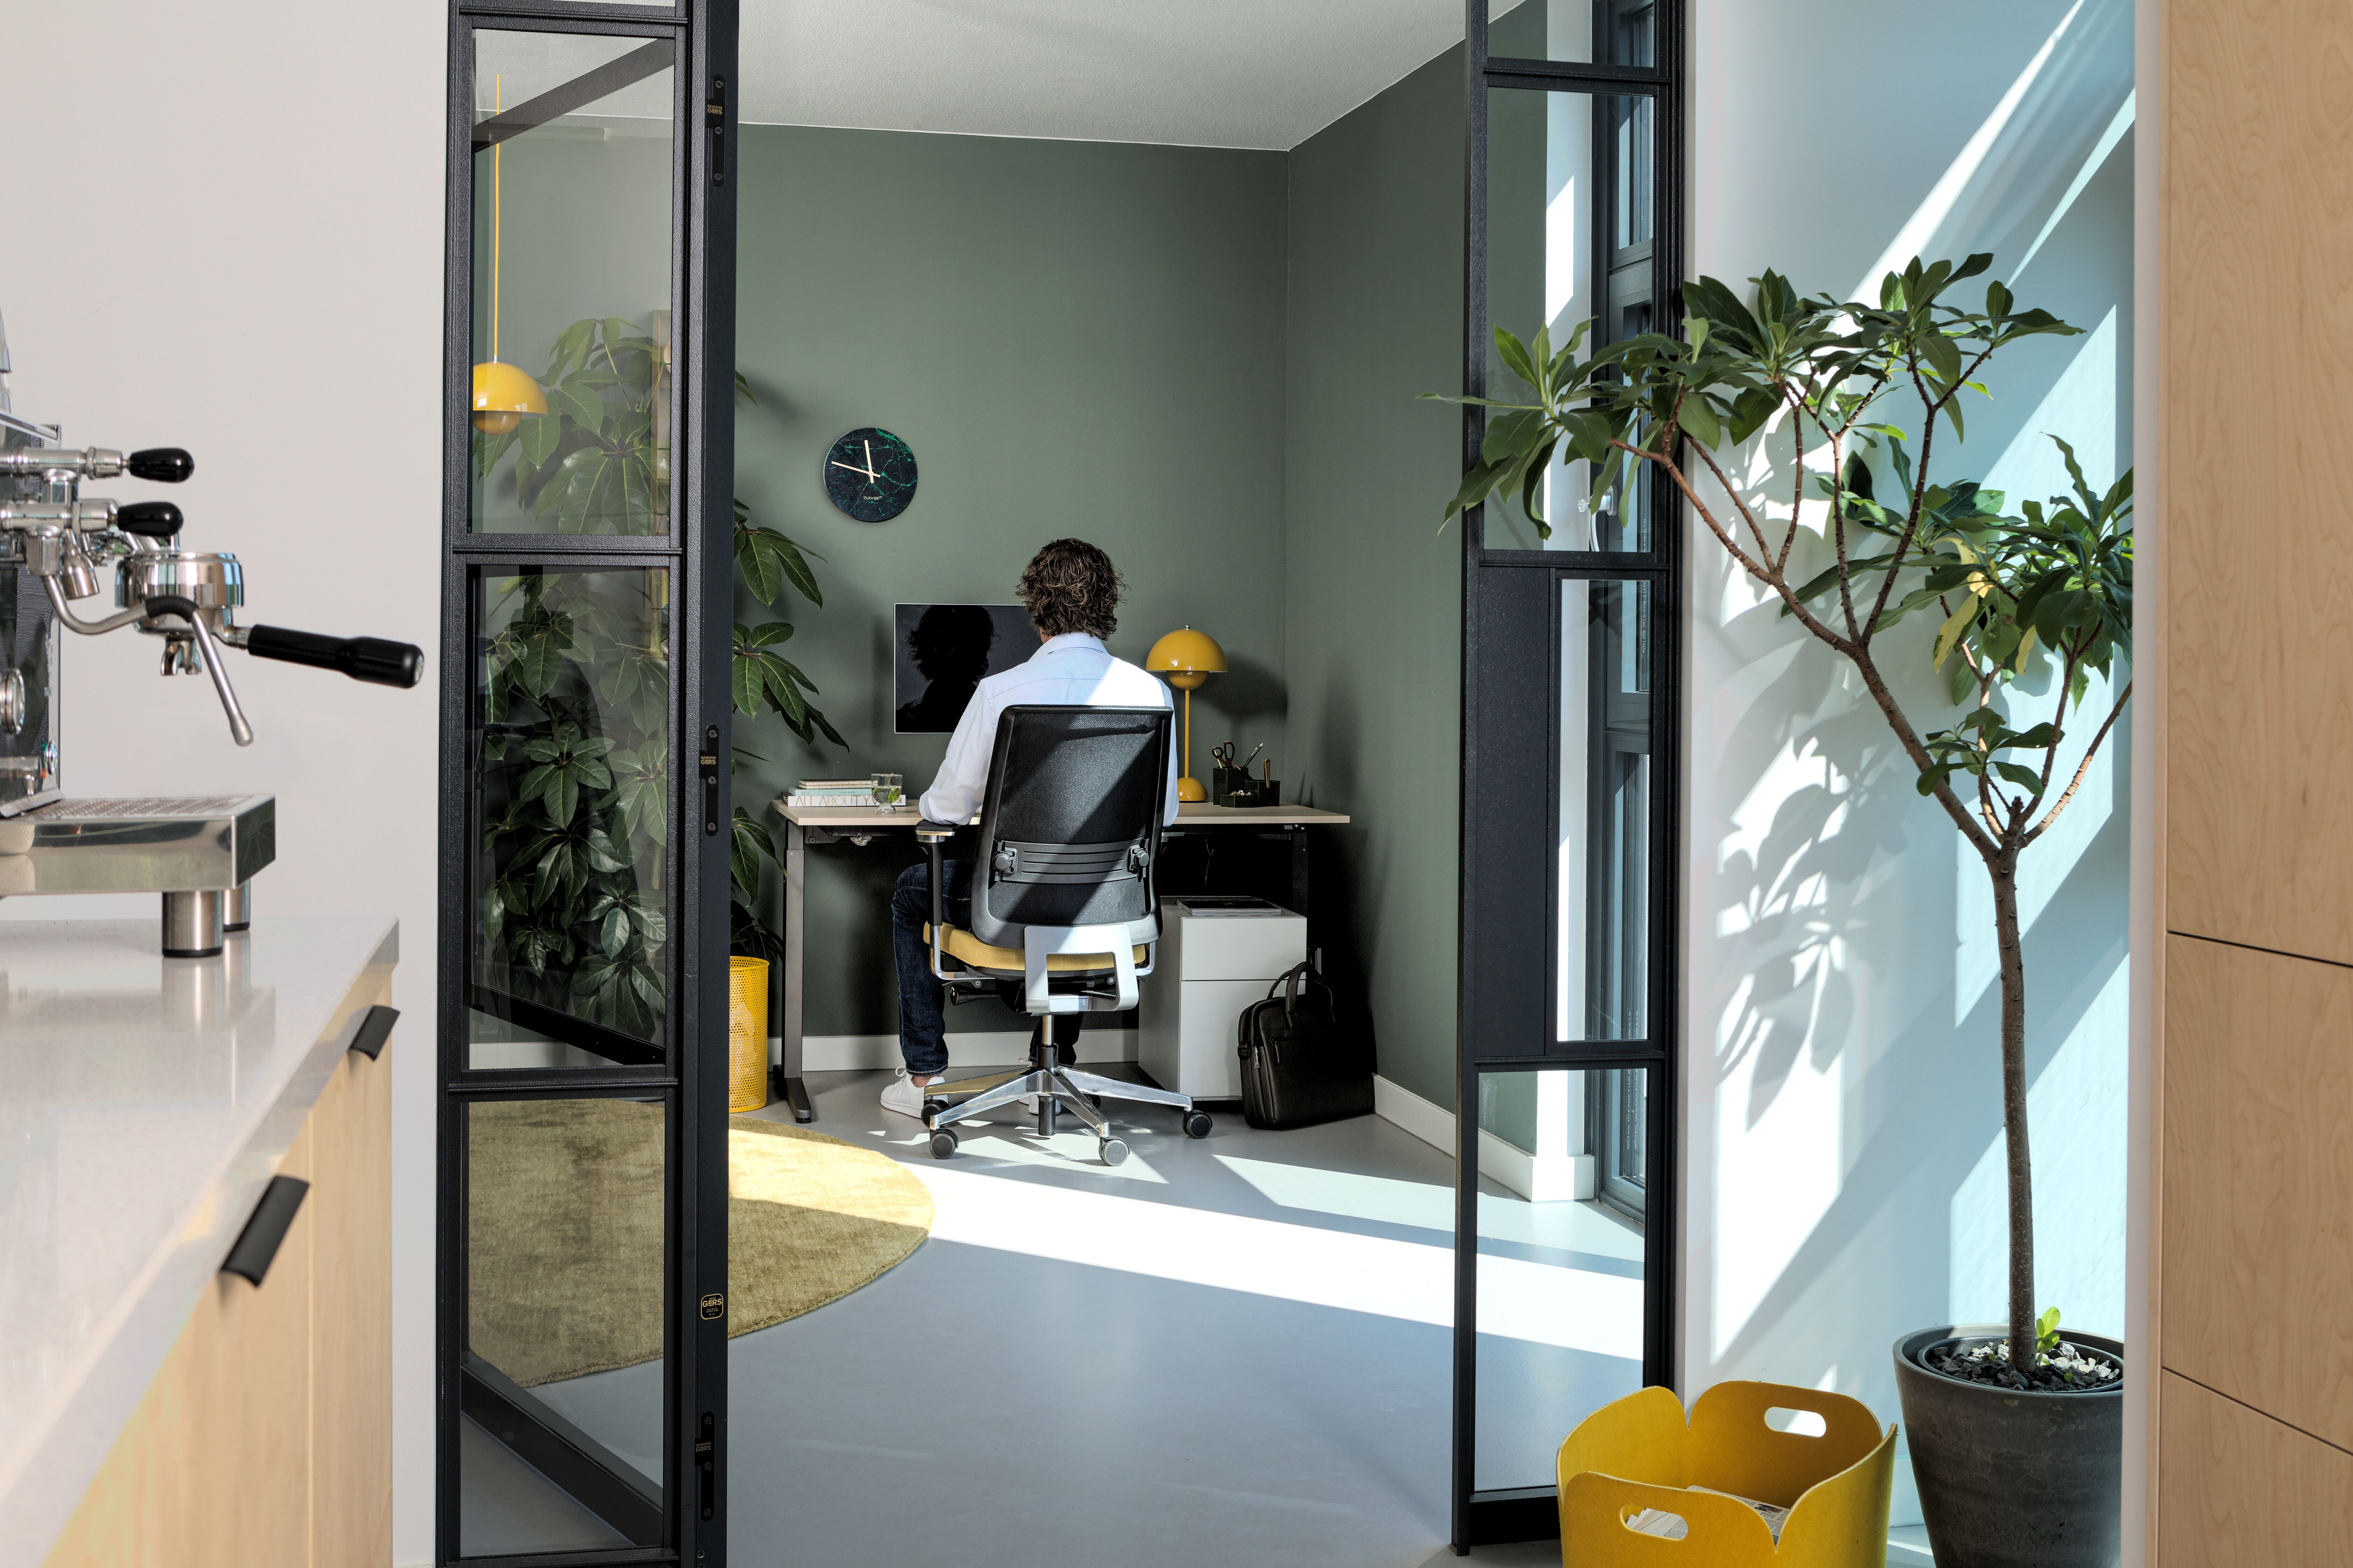 Royal Ahrend balance workstation in grey with oak tabletop and Ease office chair upholstered in yellow and black with male model interior view